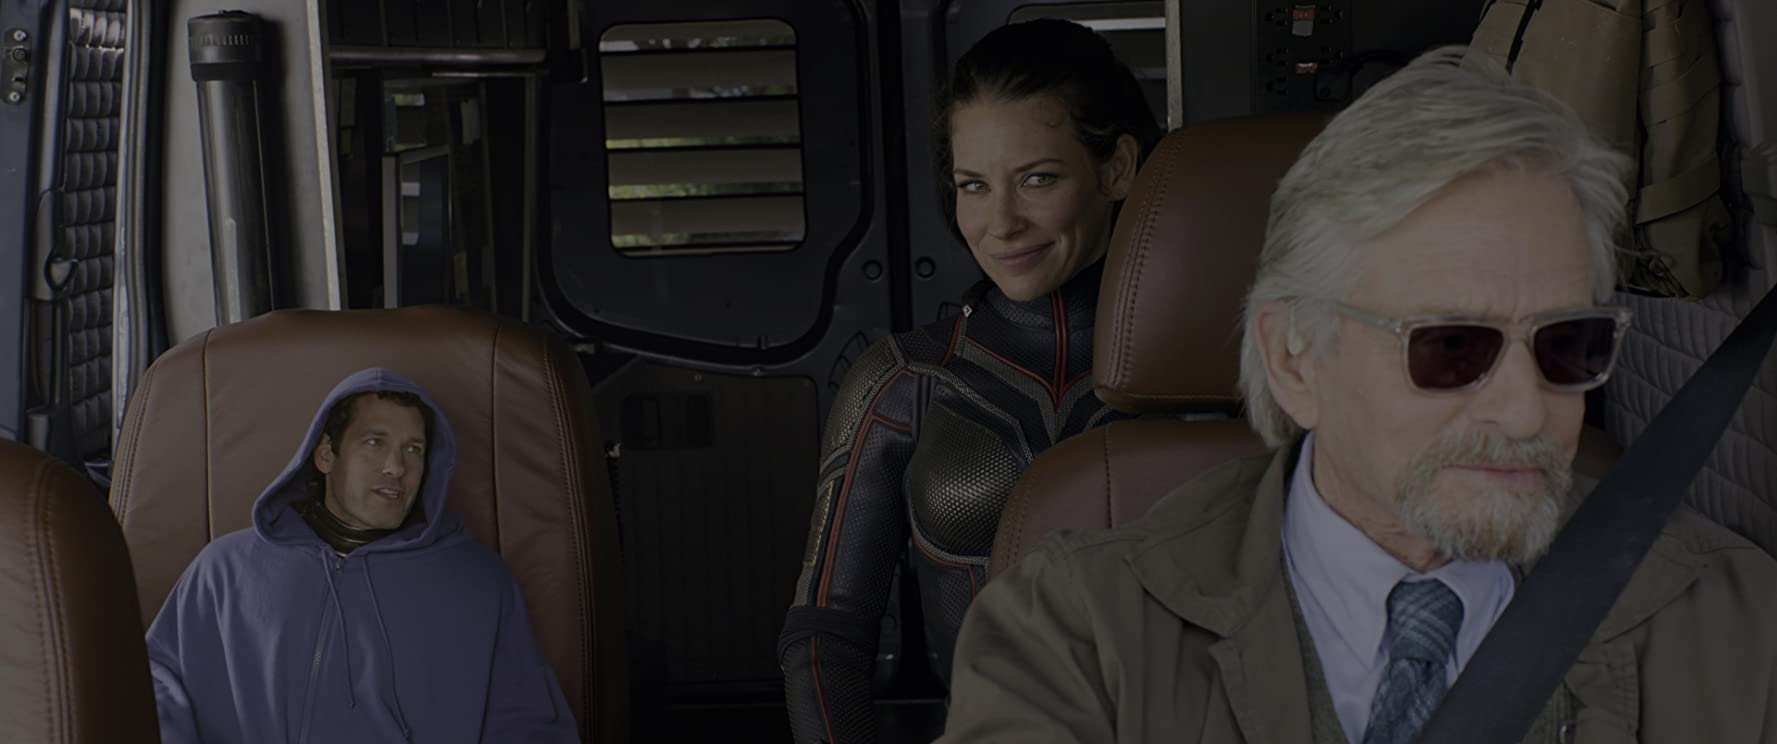 Michael Douglas, Paul Rudd, and Evangeline Lilly in Ant-Man and the Wasp (2018)